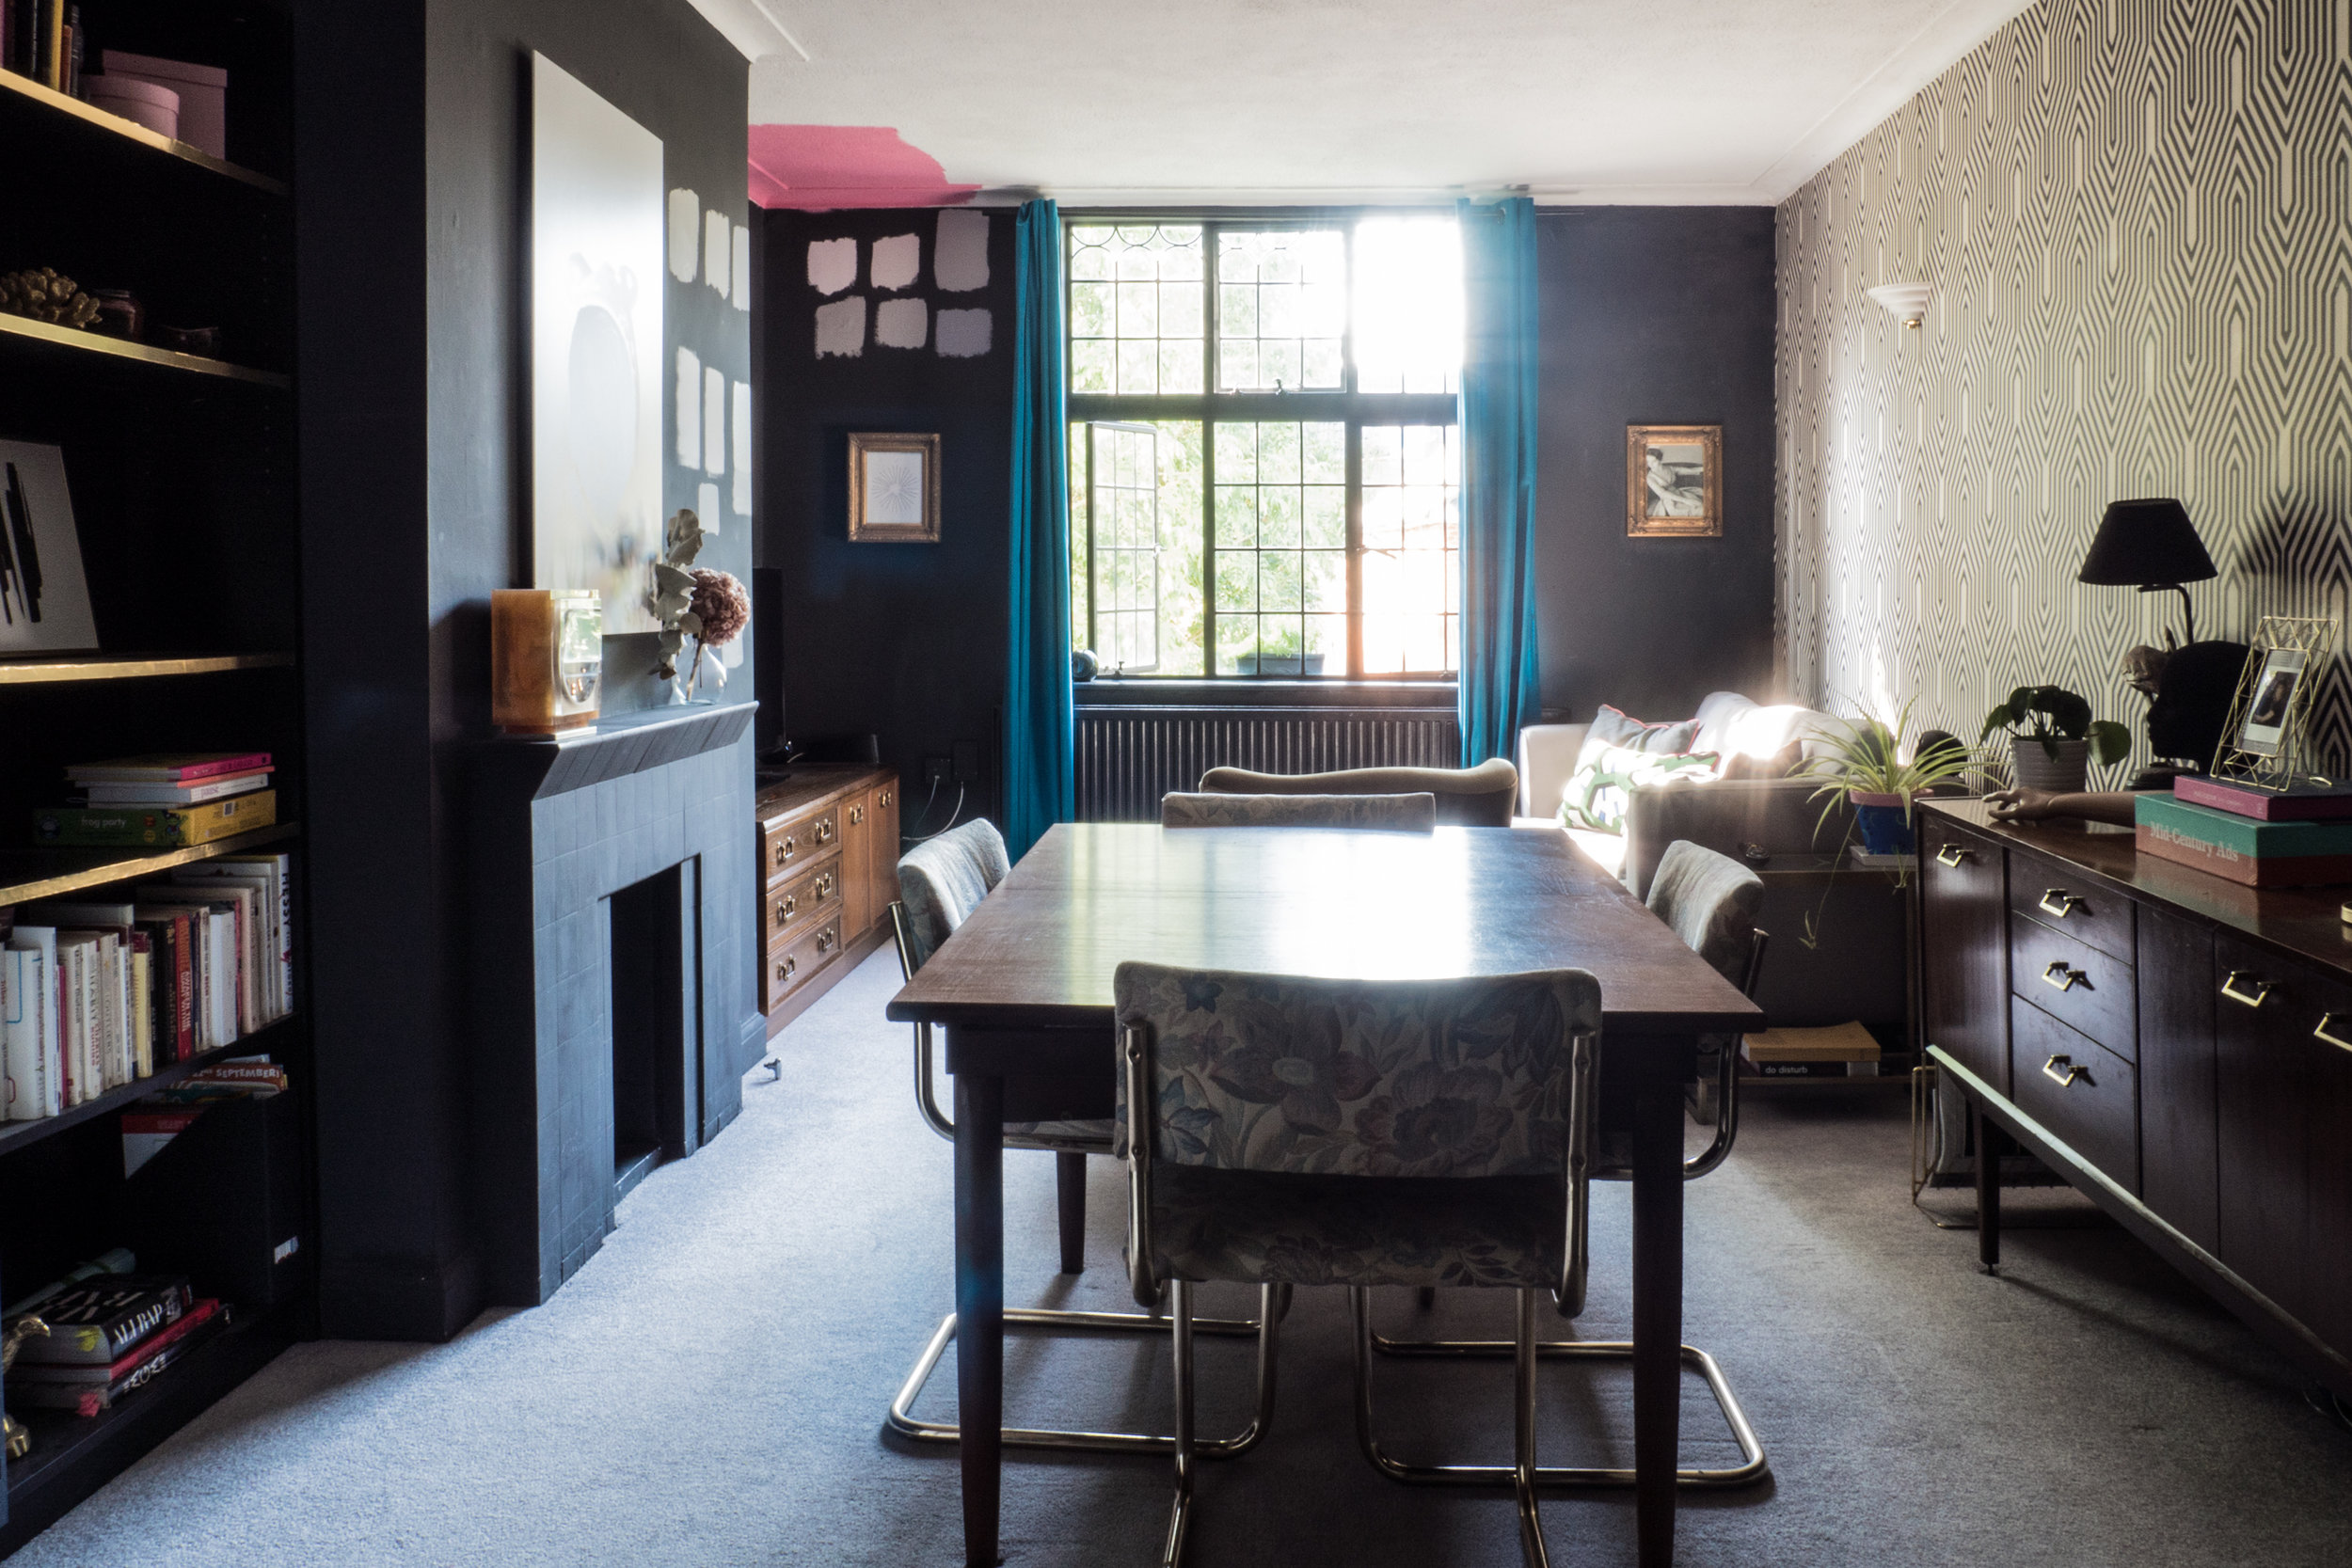 Our eclectic living room makeover